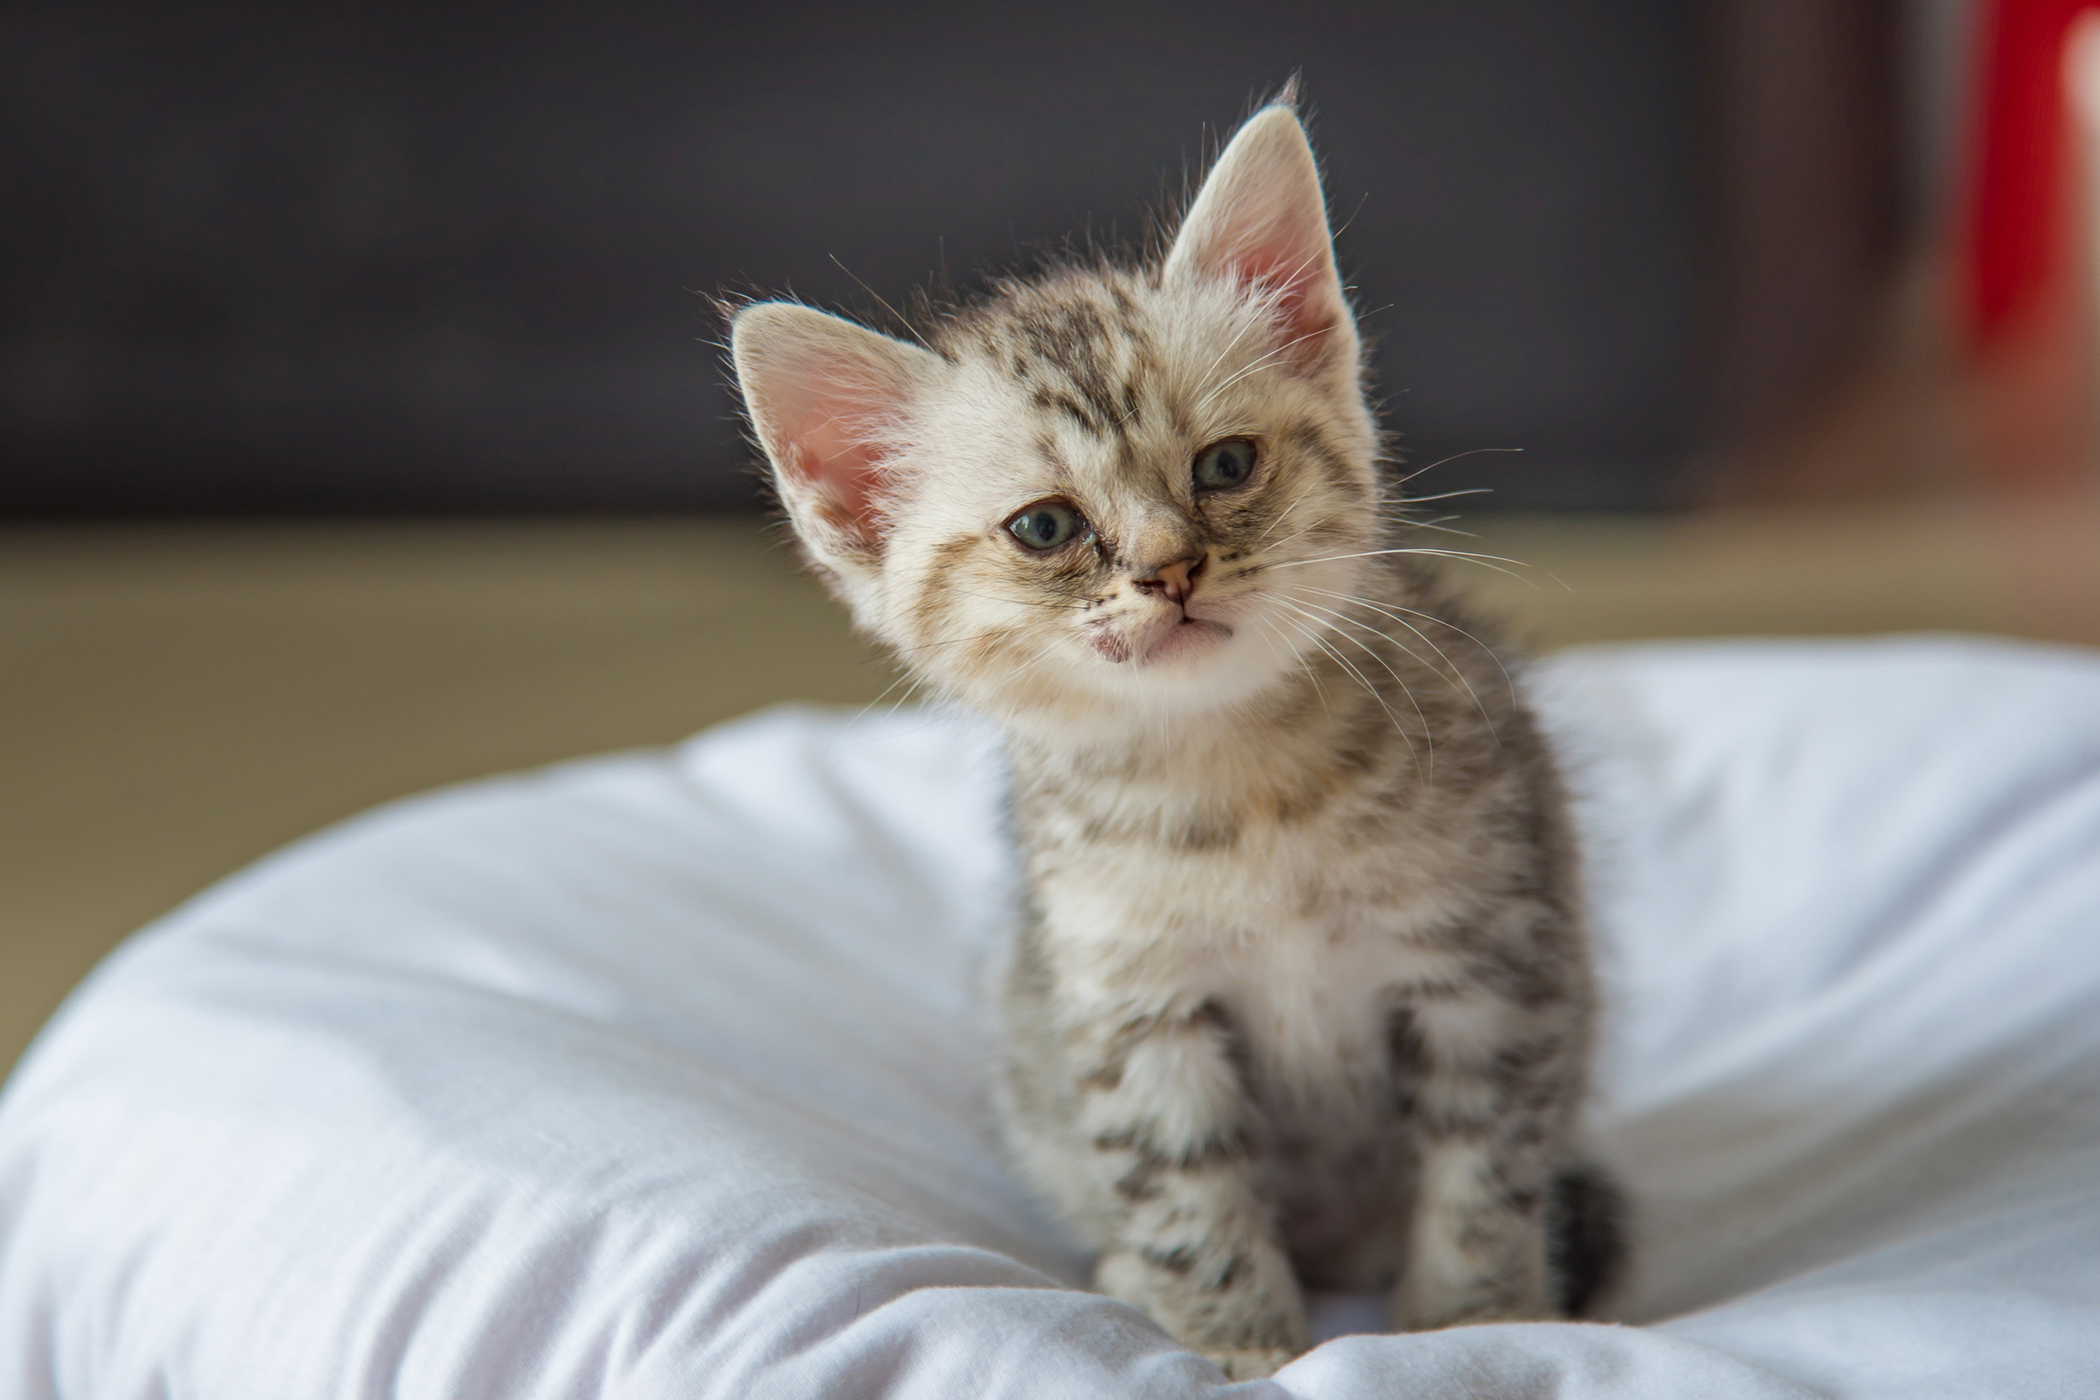 Anemia Due to Iron Deficiency in Cats